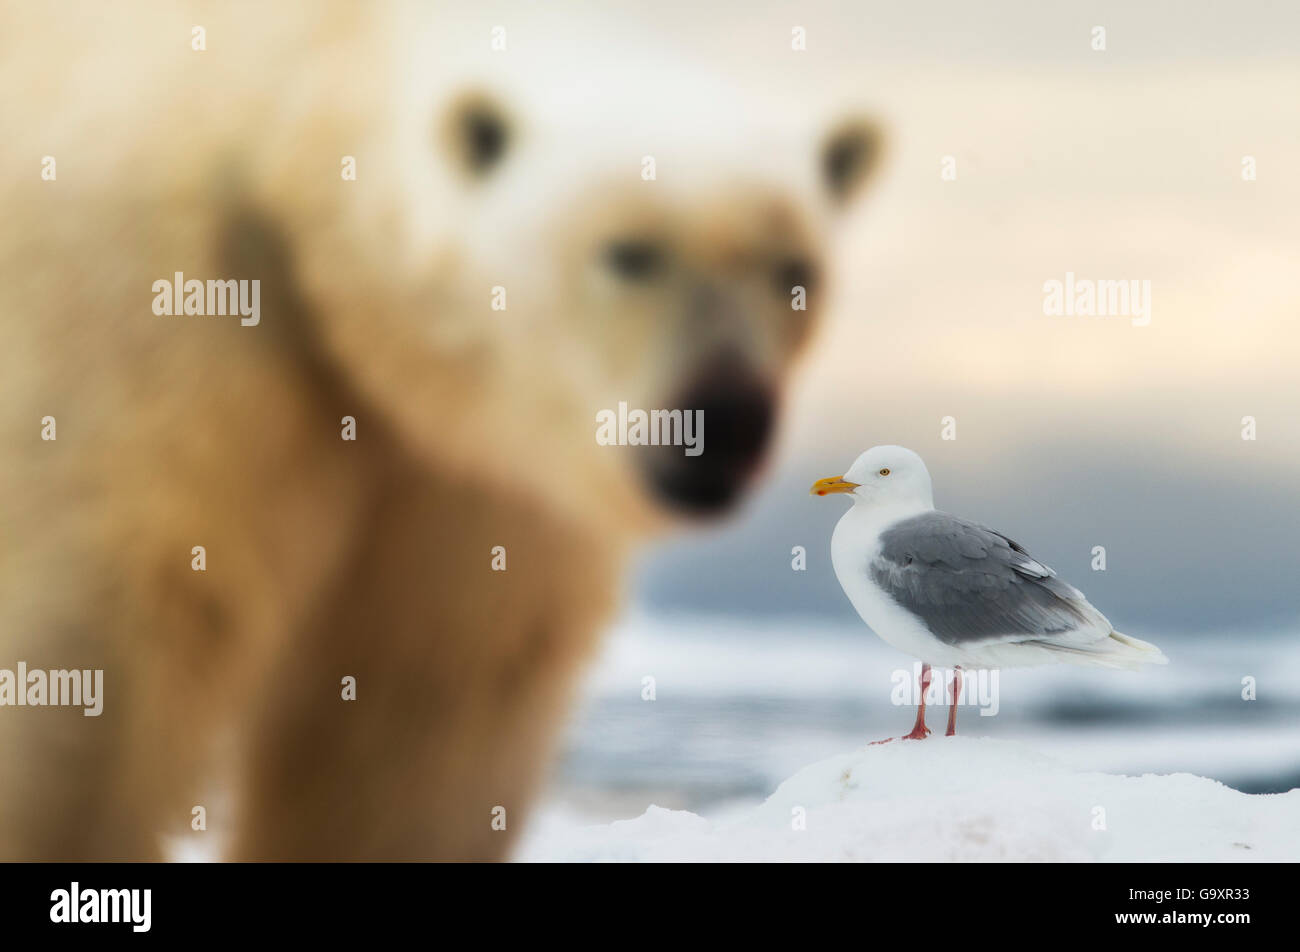 Polar bear (Ursus maritimus) and Glaucous gull (Larus hyperboreus) in Svalbard, Norway, July 2014. - Stock Image